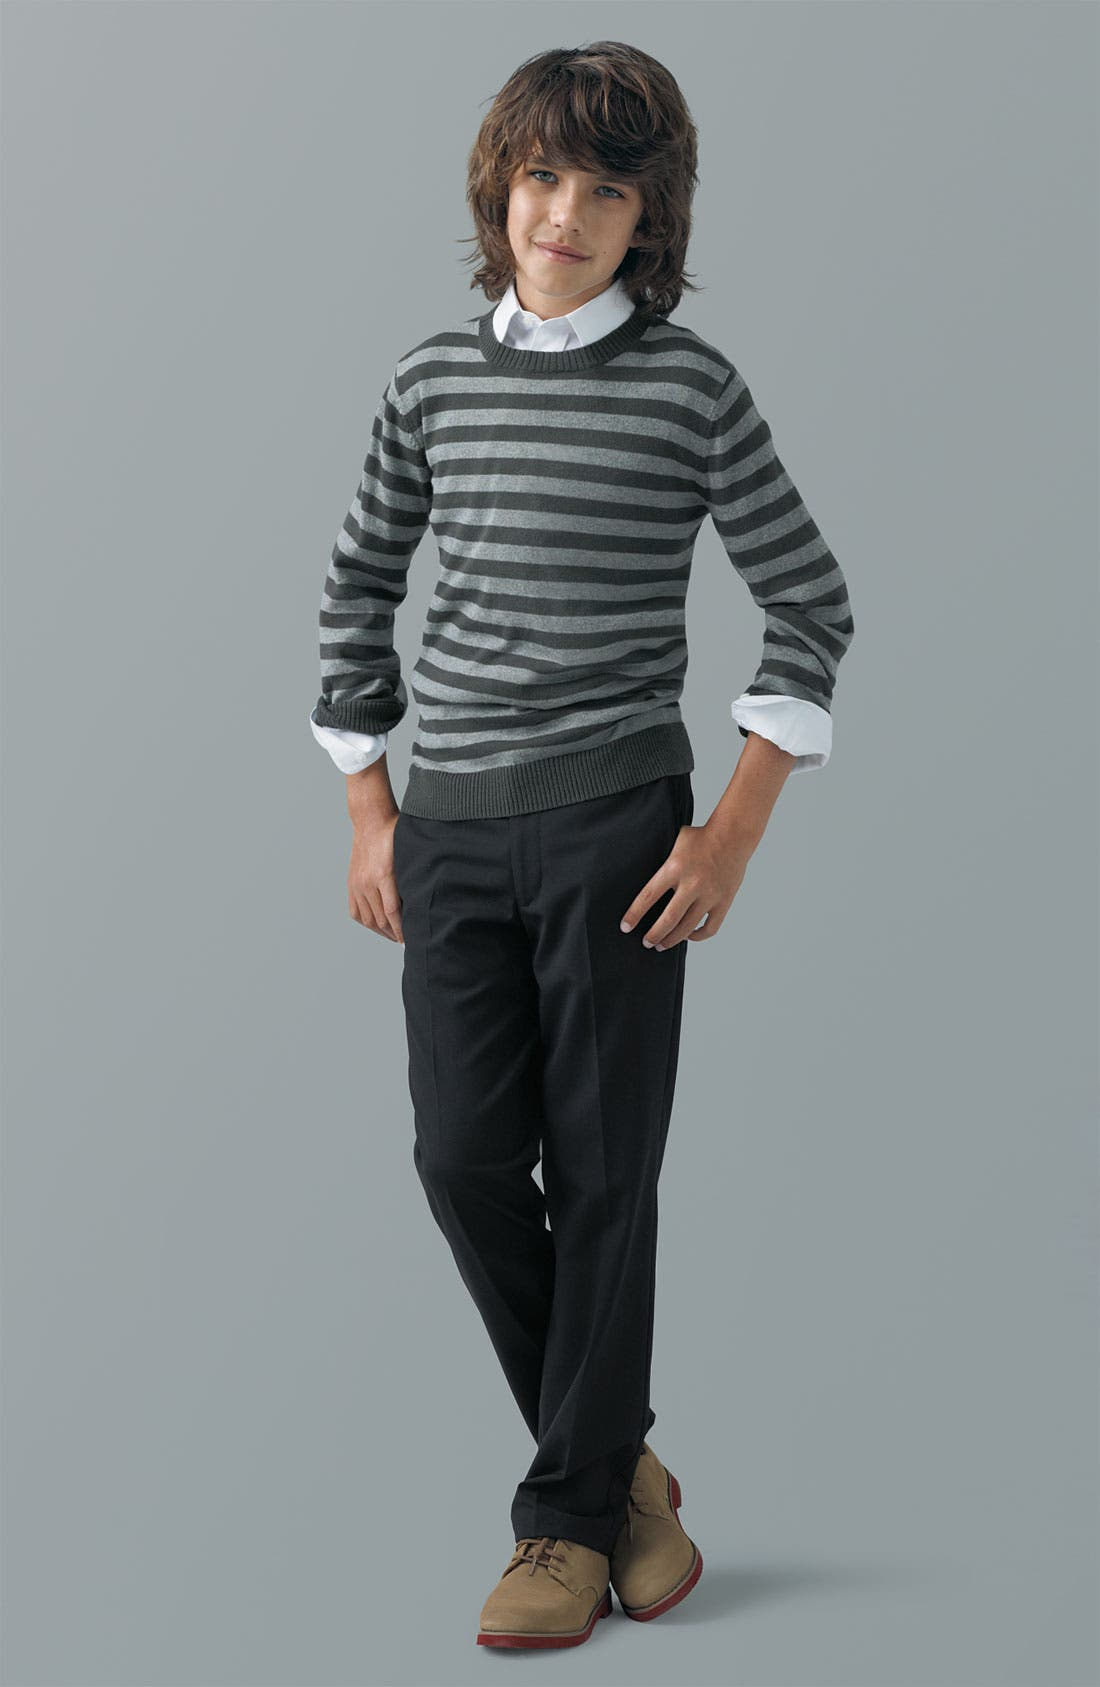 Main Image - Tucker + Tate Sweater, Nordstrom Shirt & Joseph Abboud Pants (Little Boys & Big Boys)